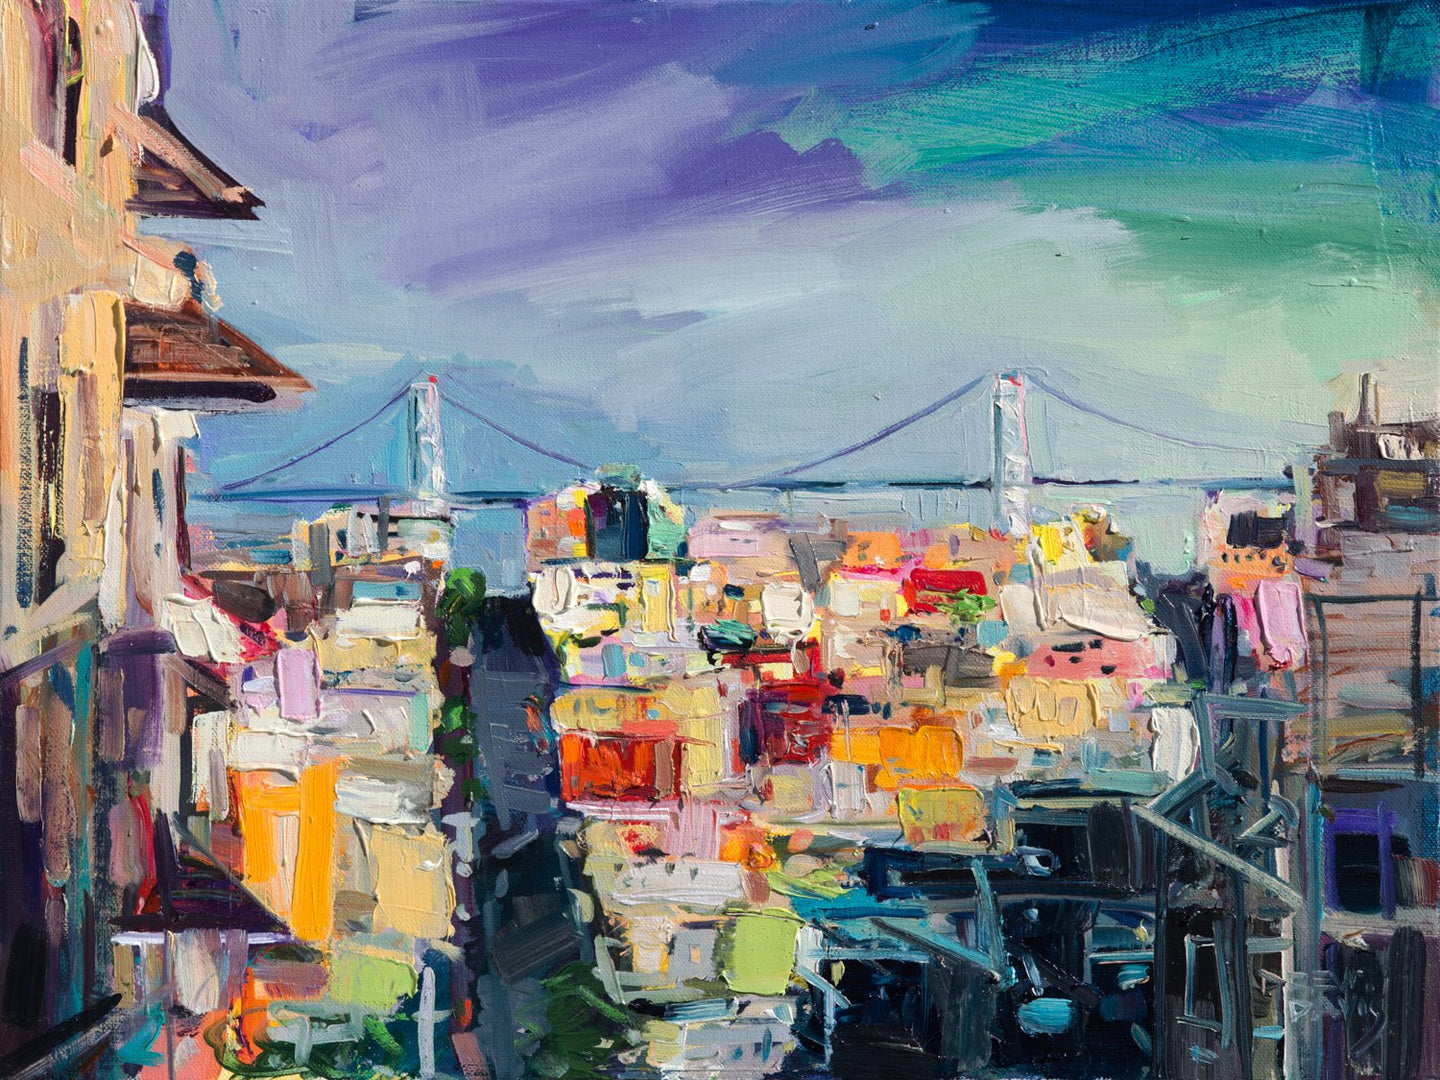 Streets of San Fran 2 | 18x24 | Original Oil on Canvas